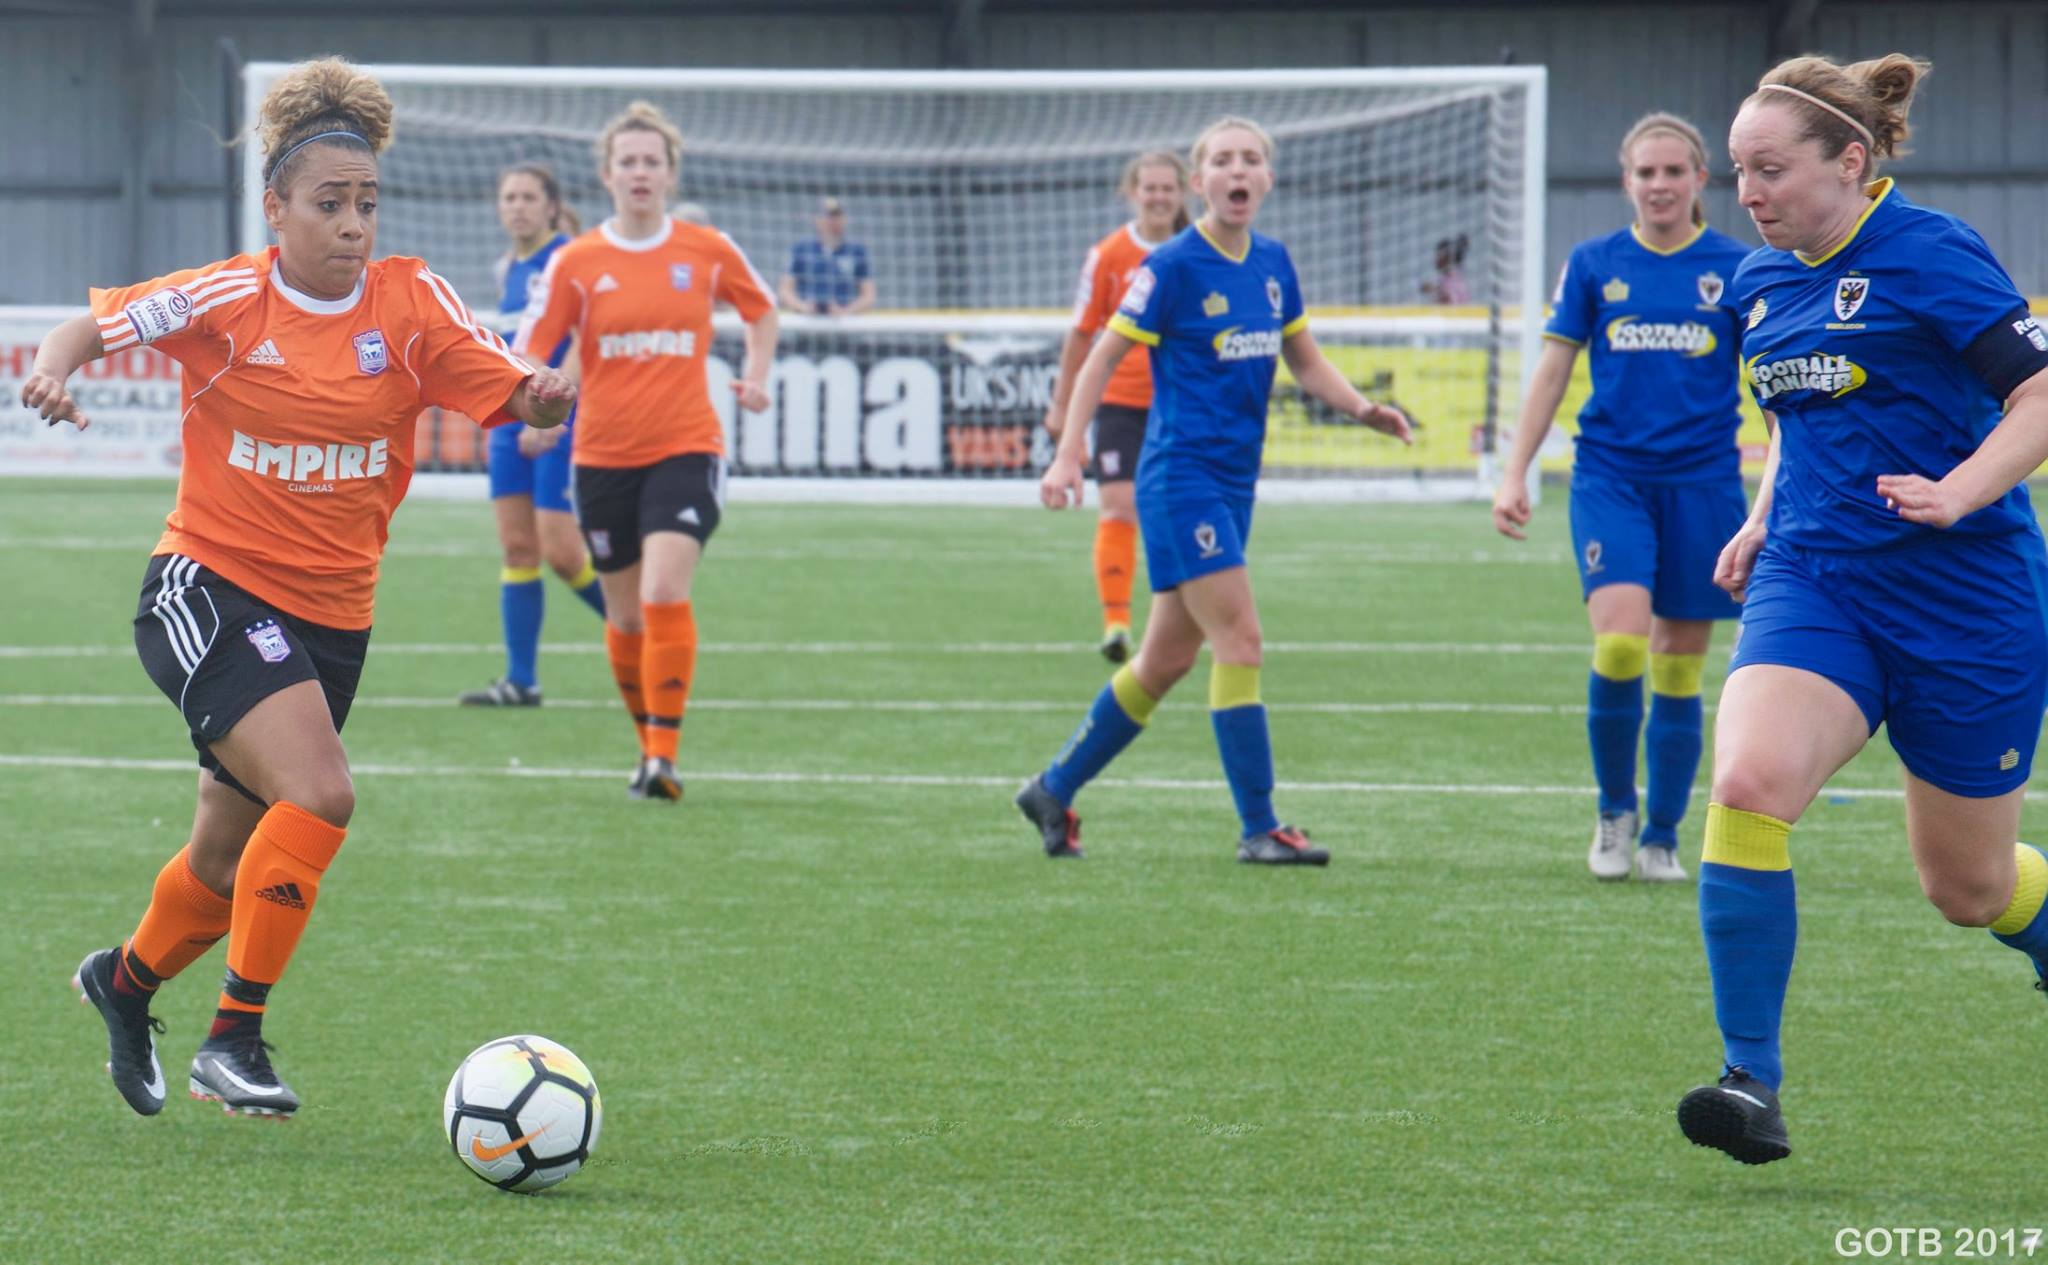 AFC Wimbledon v Ipswich Town, FAWPL Division 1 South East